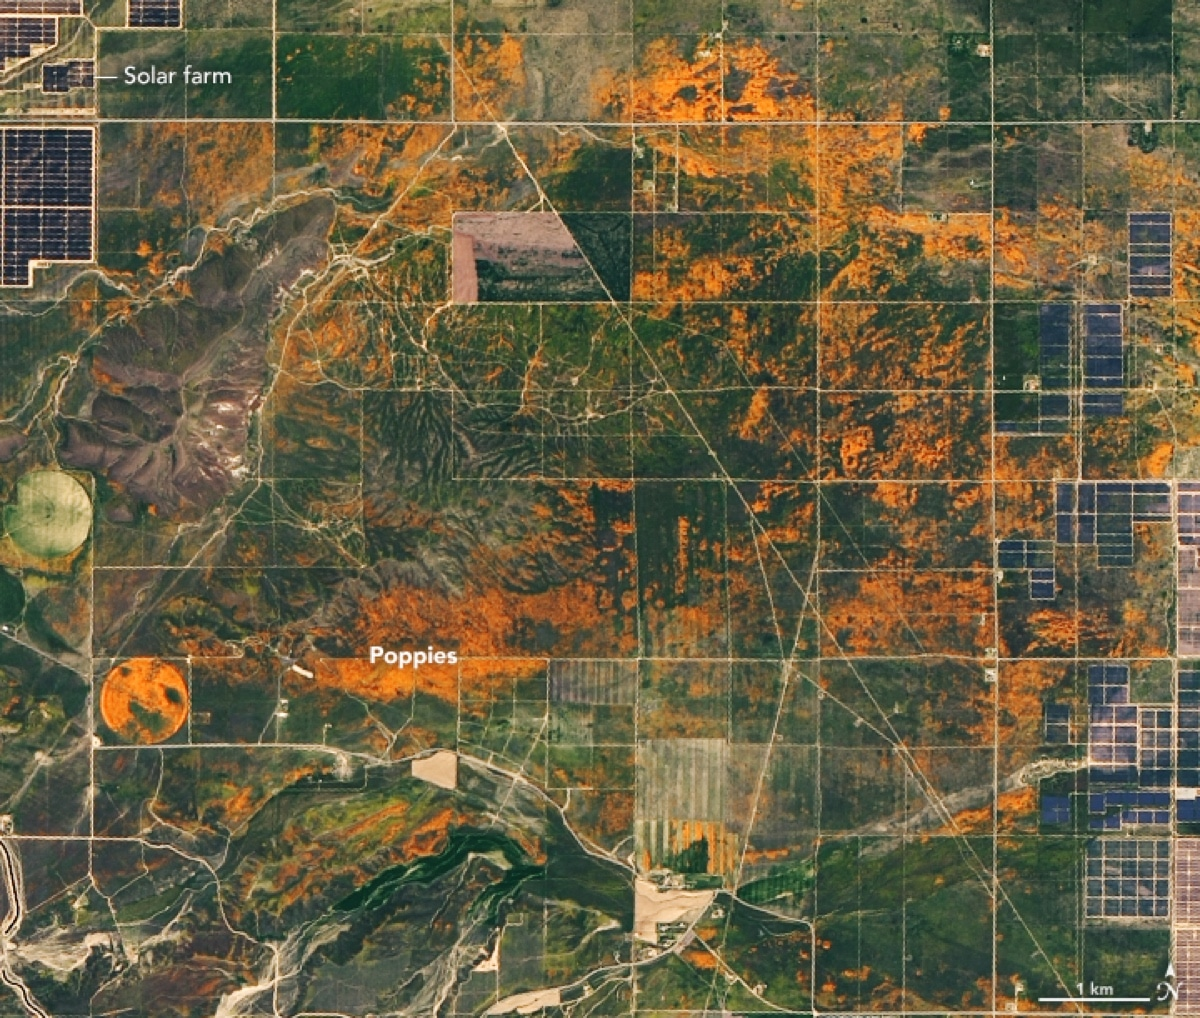 NASA Photo of California Superbloom from the NASA Earth Observatory